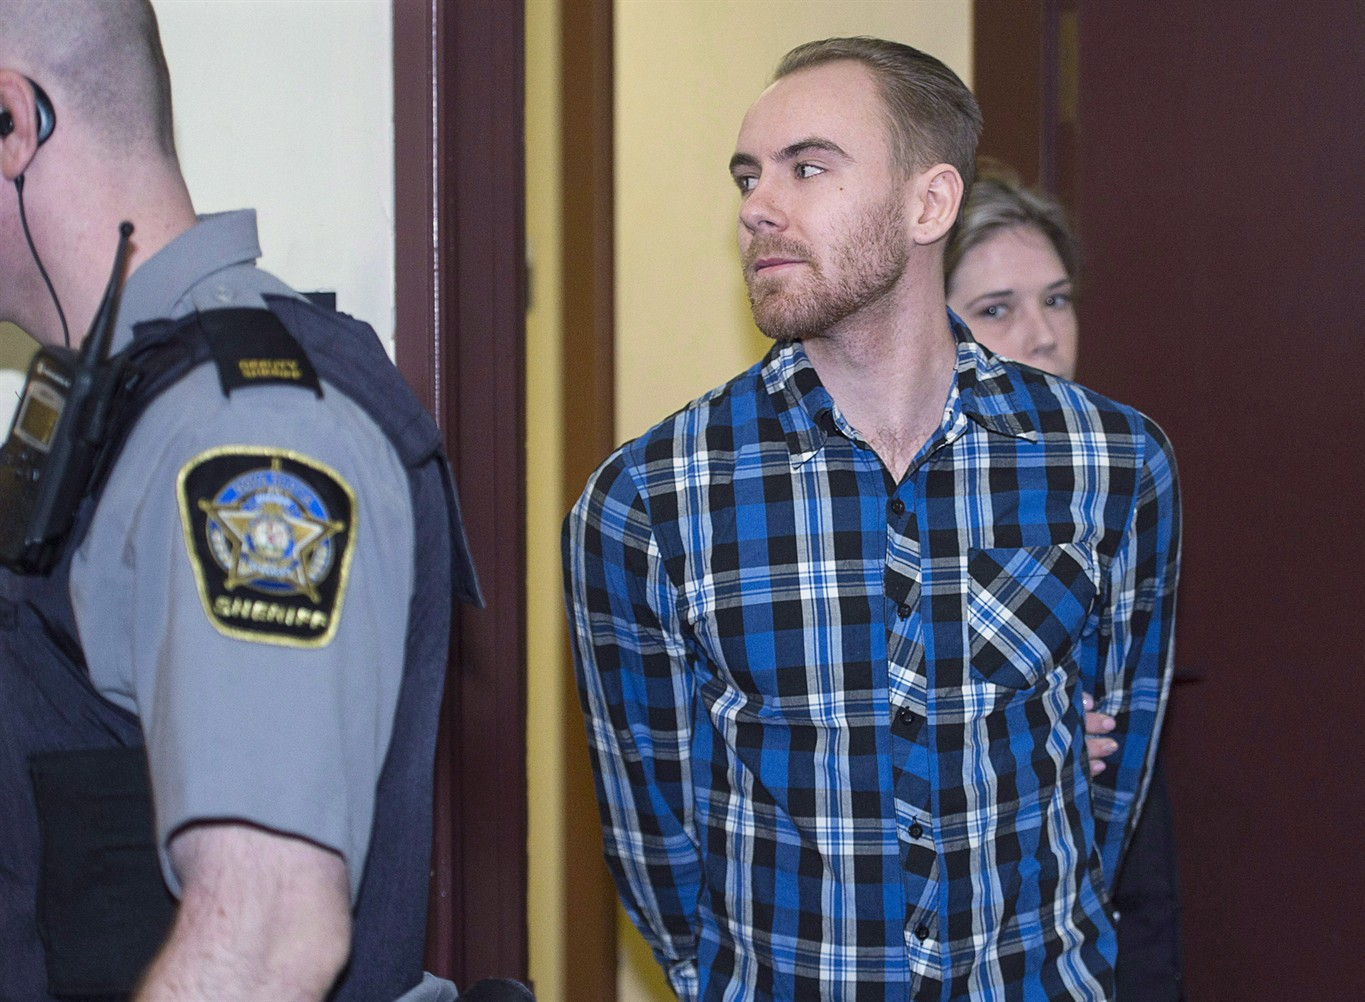 medical student s murder trial shown video of initial halifax medical student s murder trial shown video of initial halifax police interview